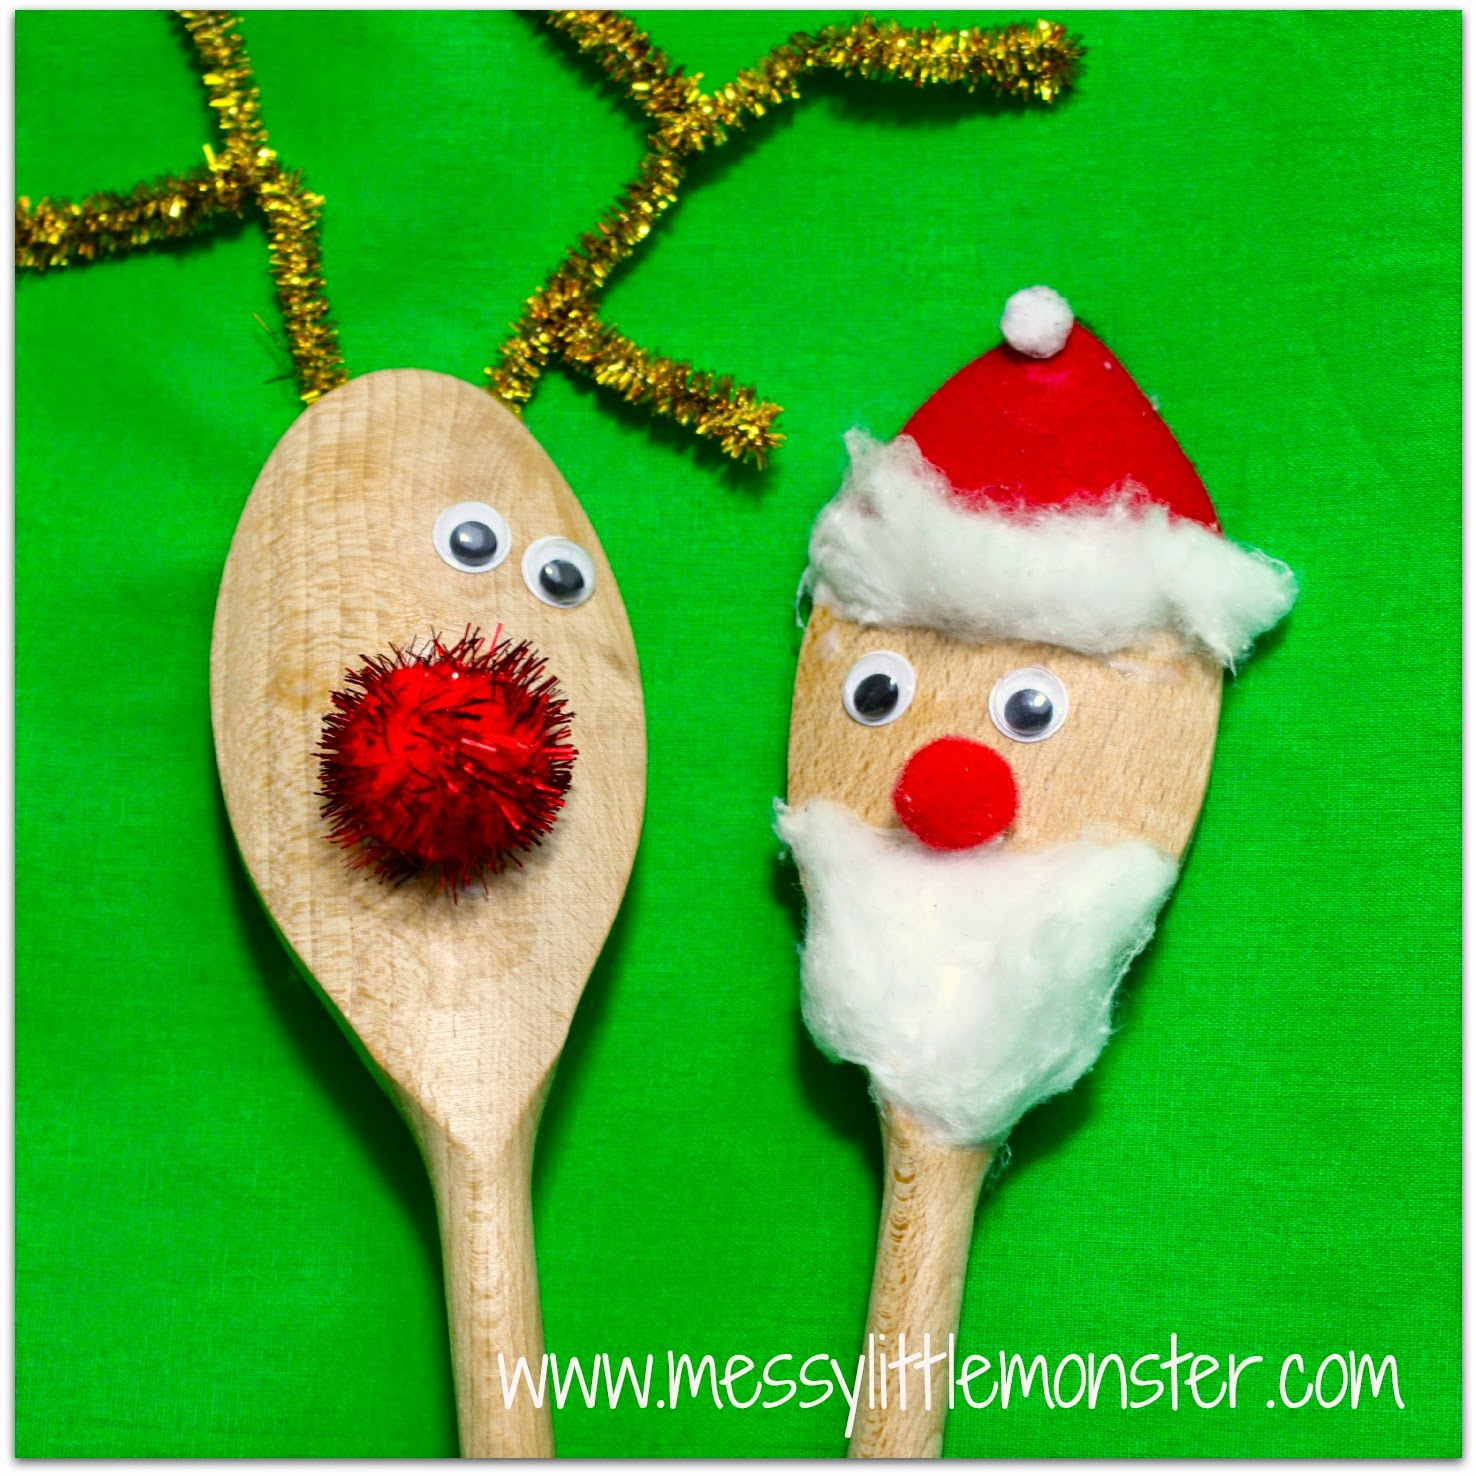 Santa and rudolf spoon puppets simple christmas craft for kids